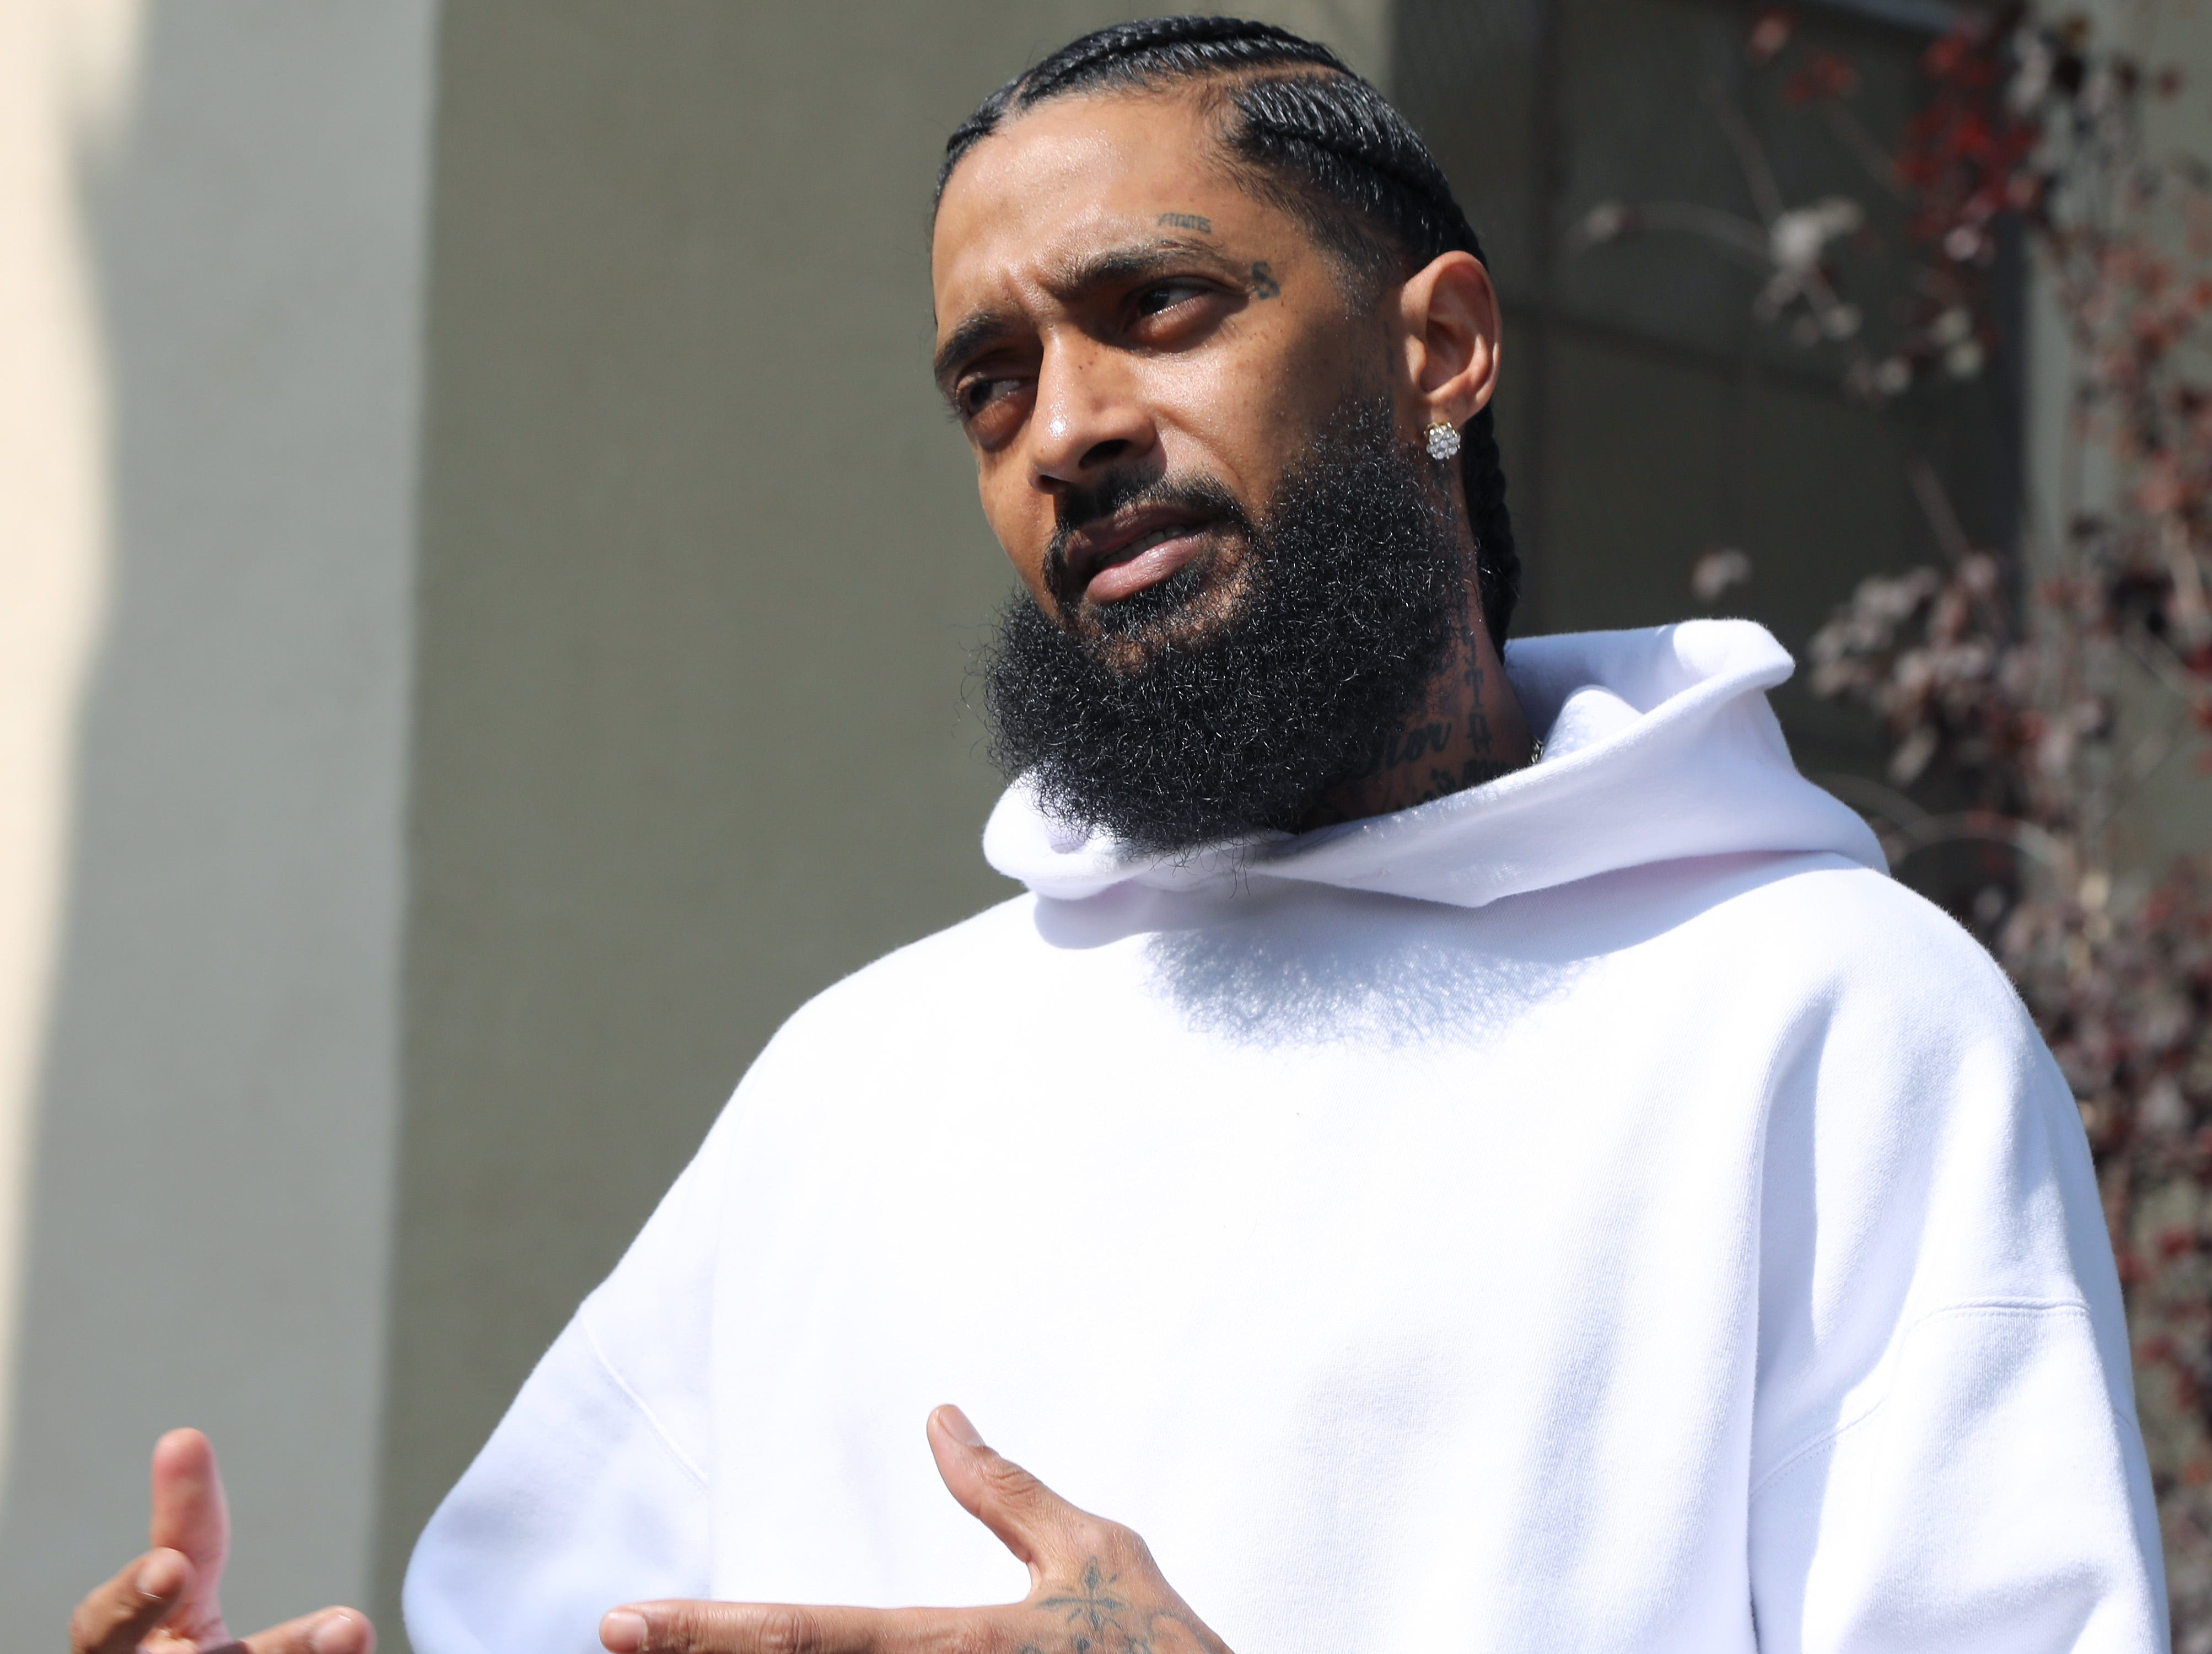 Nipsey Hussle attends Nipsey Hussle x PUMA Hoops Basketball Court Refurbishment Reveal Event on Oct. 22, 2018, in Los Angeles.